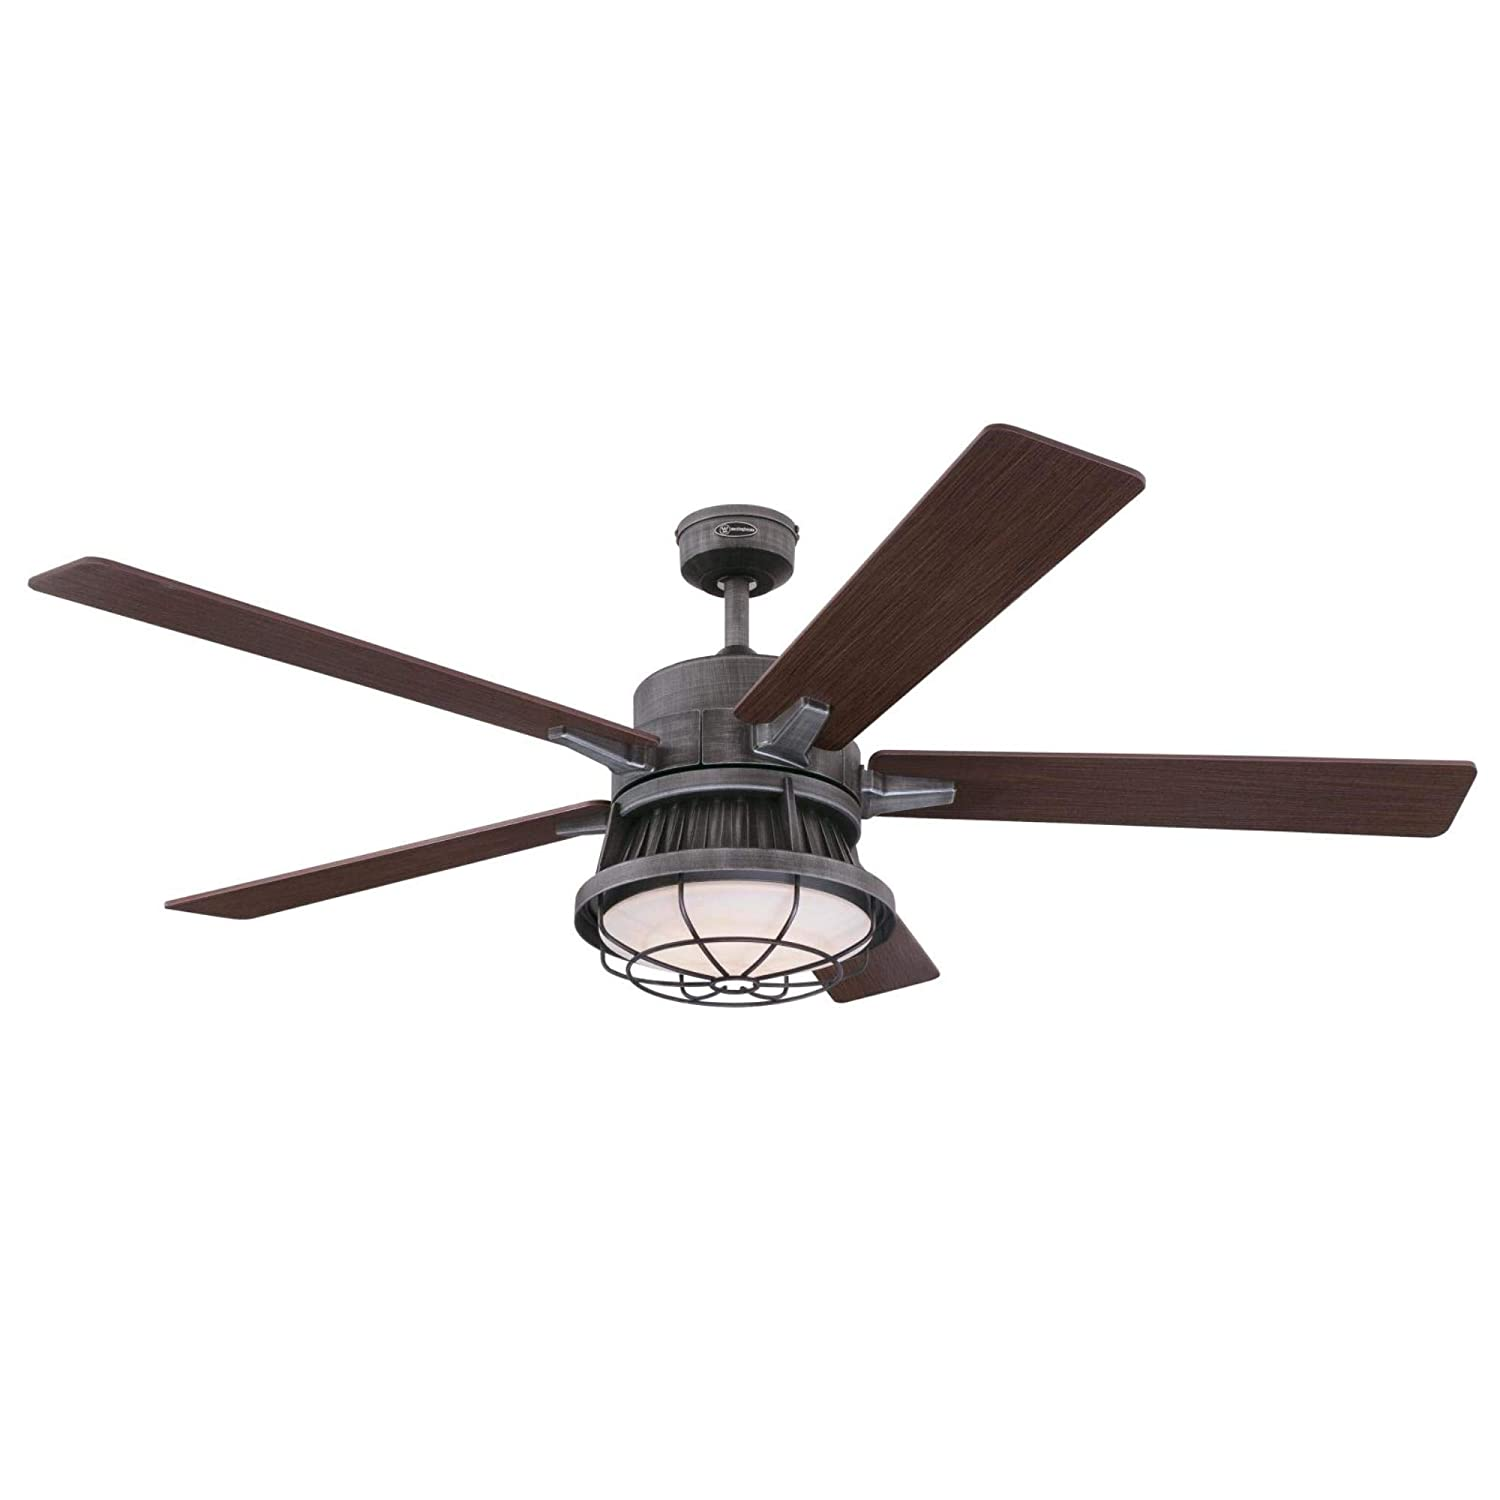 Westinghouse Lighting 7220400 Chambers 60-Inch Distressed Aluminum Indoor, Dimmable LED Light Kit, Opal Frosted Glass, Removable Cage, Remote Control Ceiling Fan